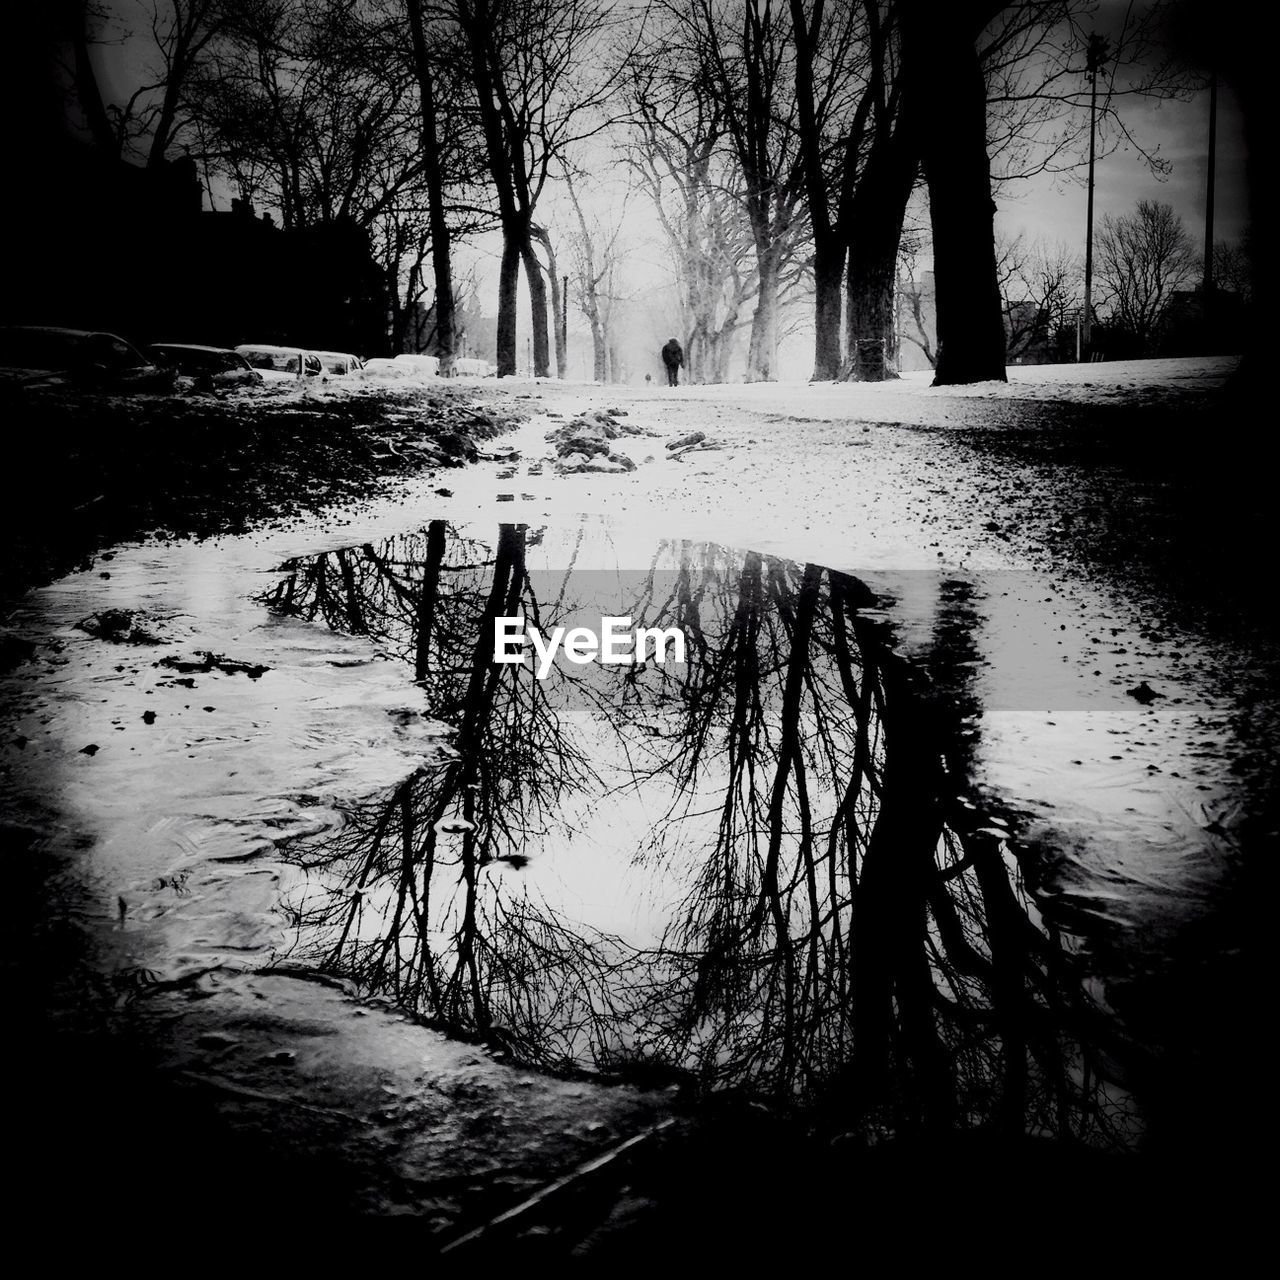 Bare trees reflected in puddle